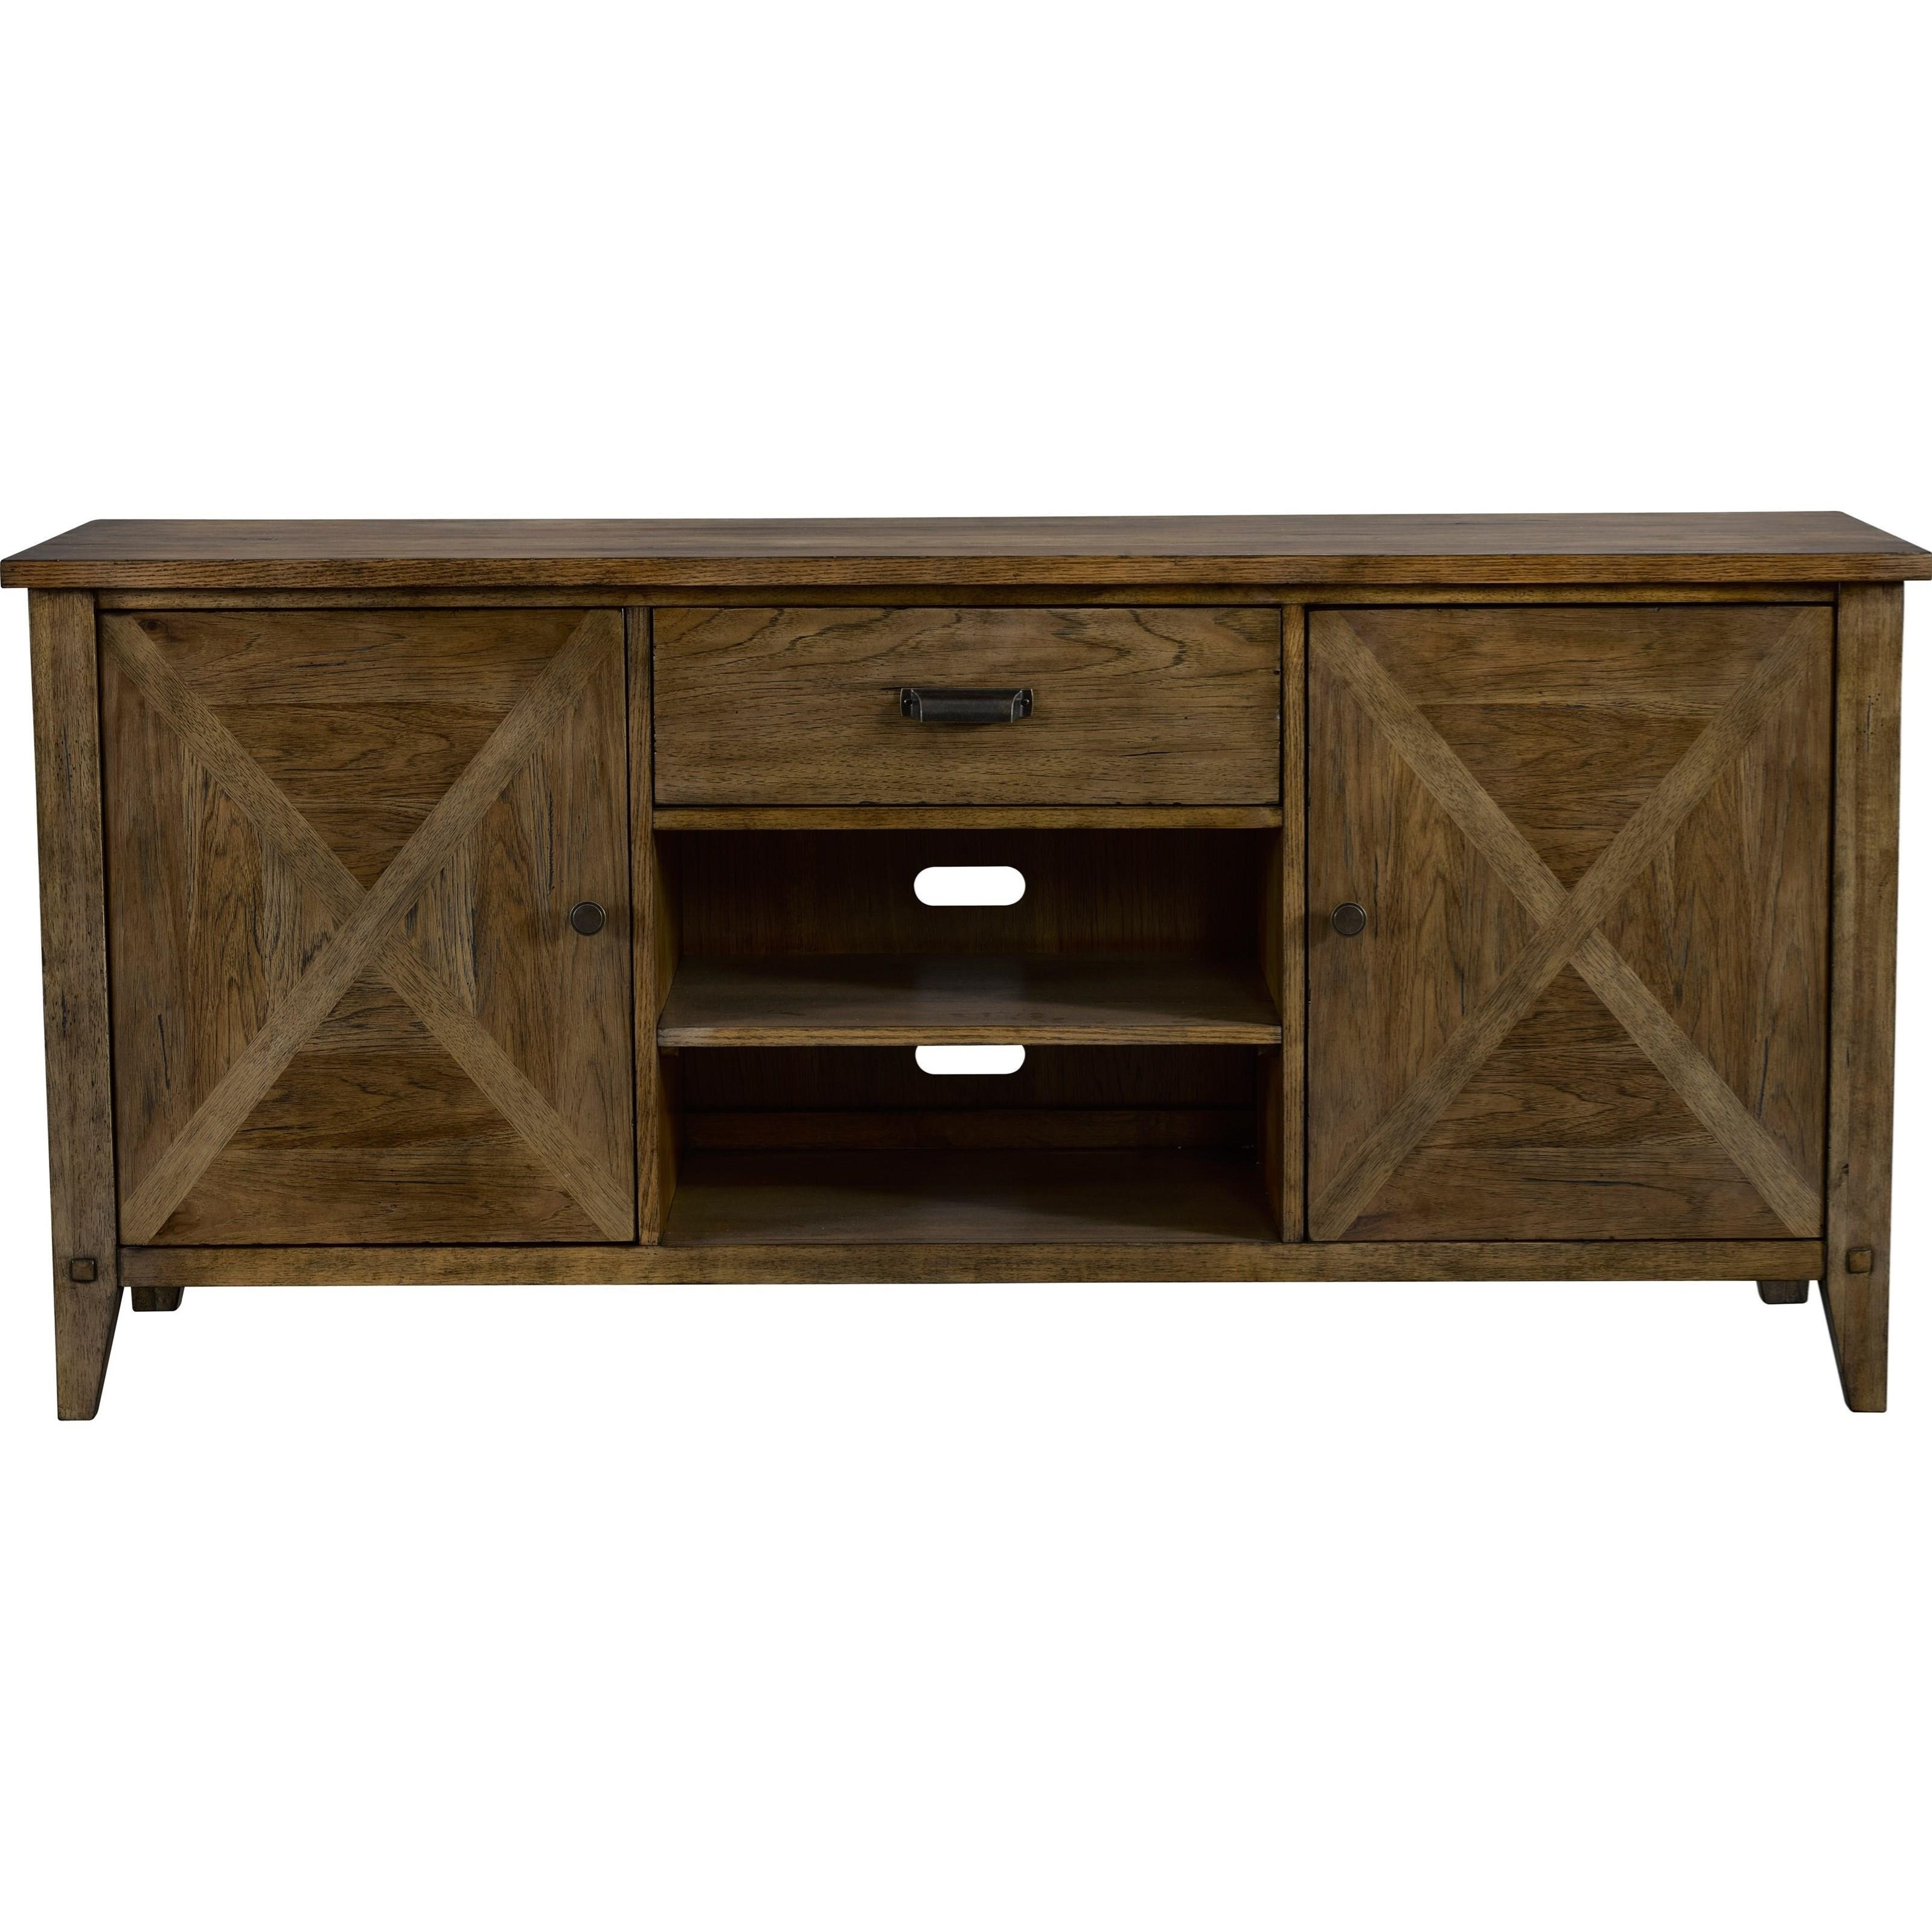 Broyhill Furniture Creedmoor Entertainment Console Item Number 3113 055